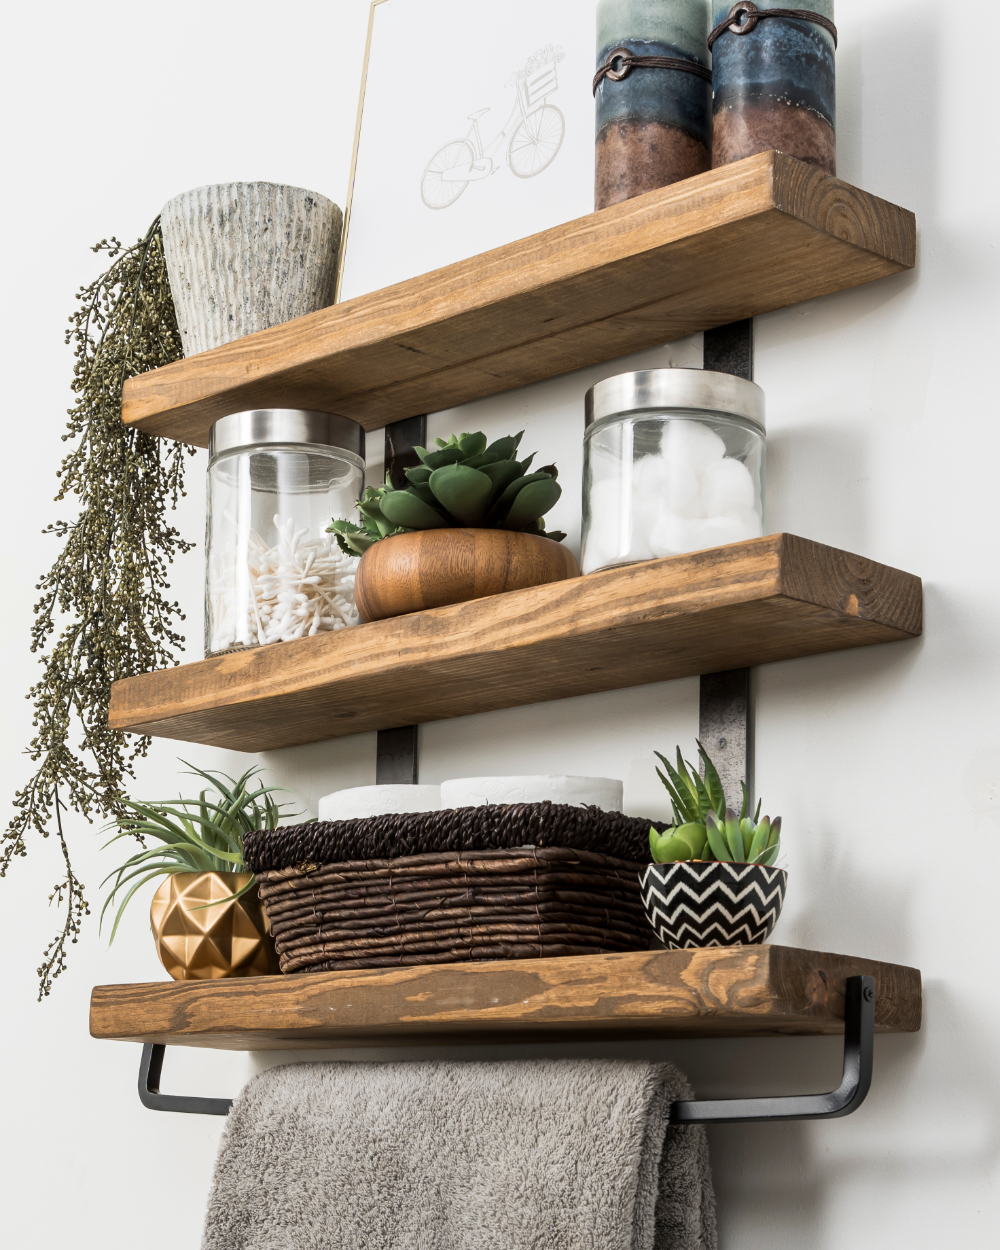 Industrial 3 Tier Floating Shelf With Towel Bar 24 Walmart Com In 2020 Floating Shelves Diy Floating Shelves Floating Shelves Bathroom